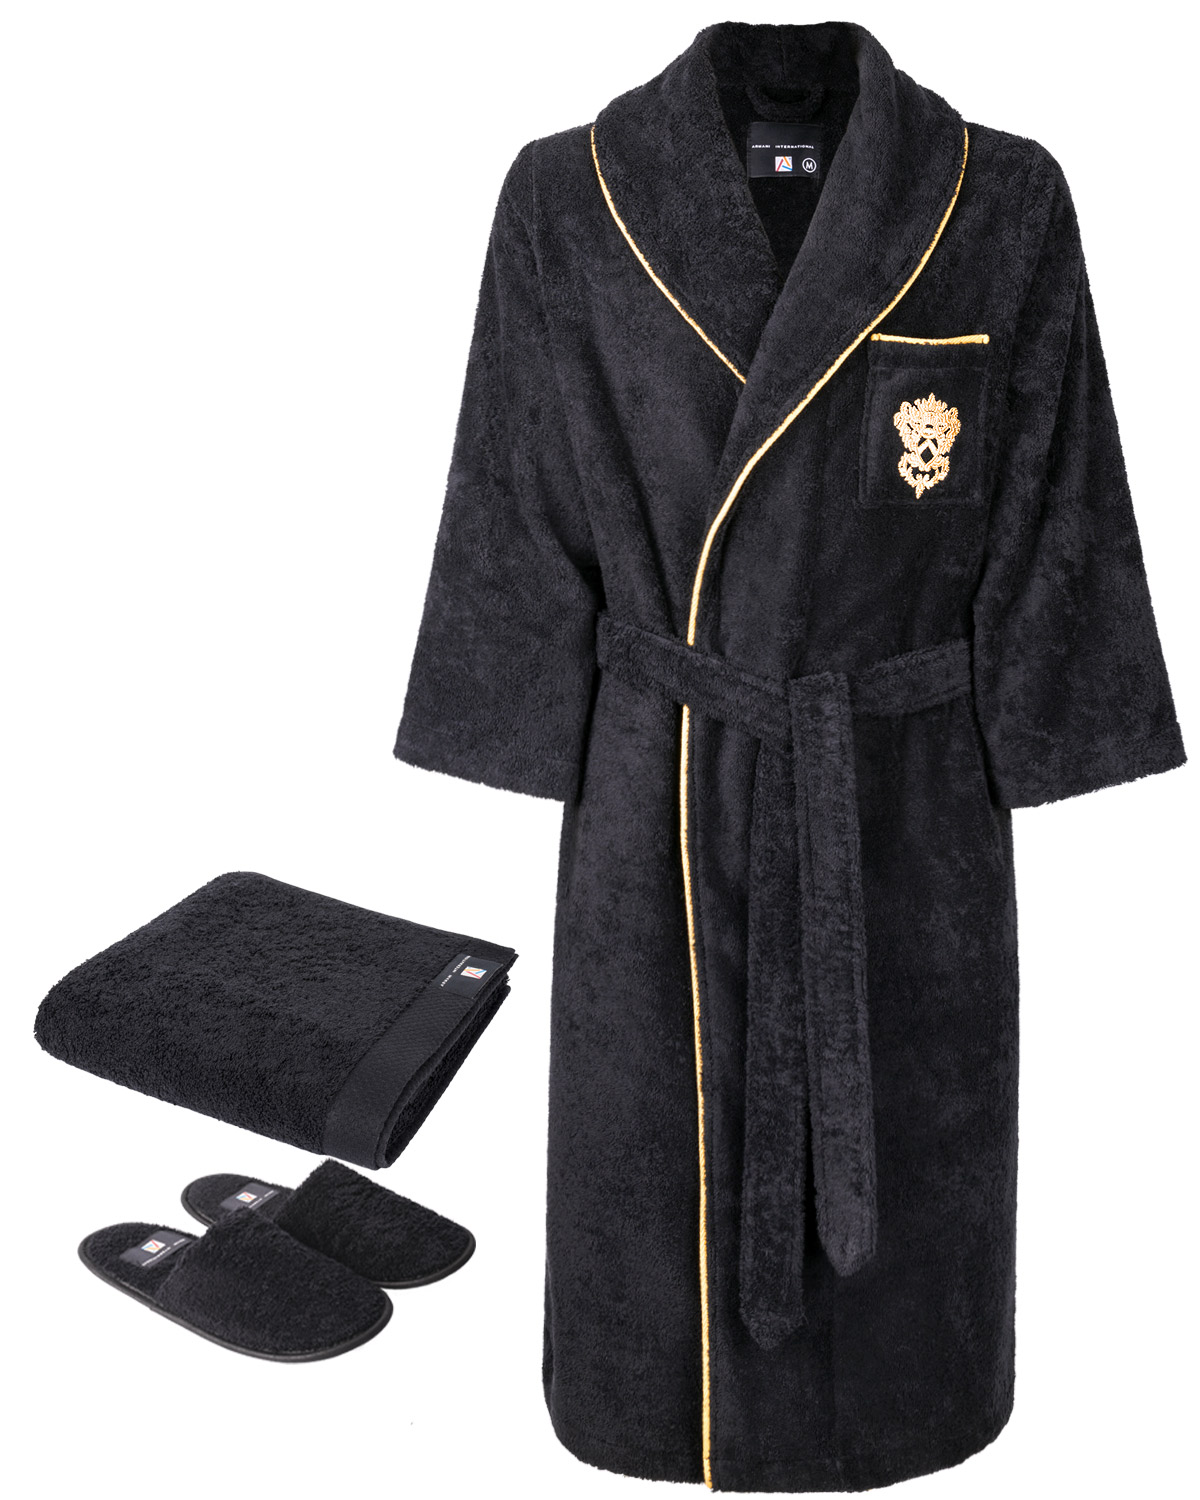 Robe, Slippers, Hand Towel Set - Roma Medallion Piped, Black-Gold